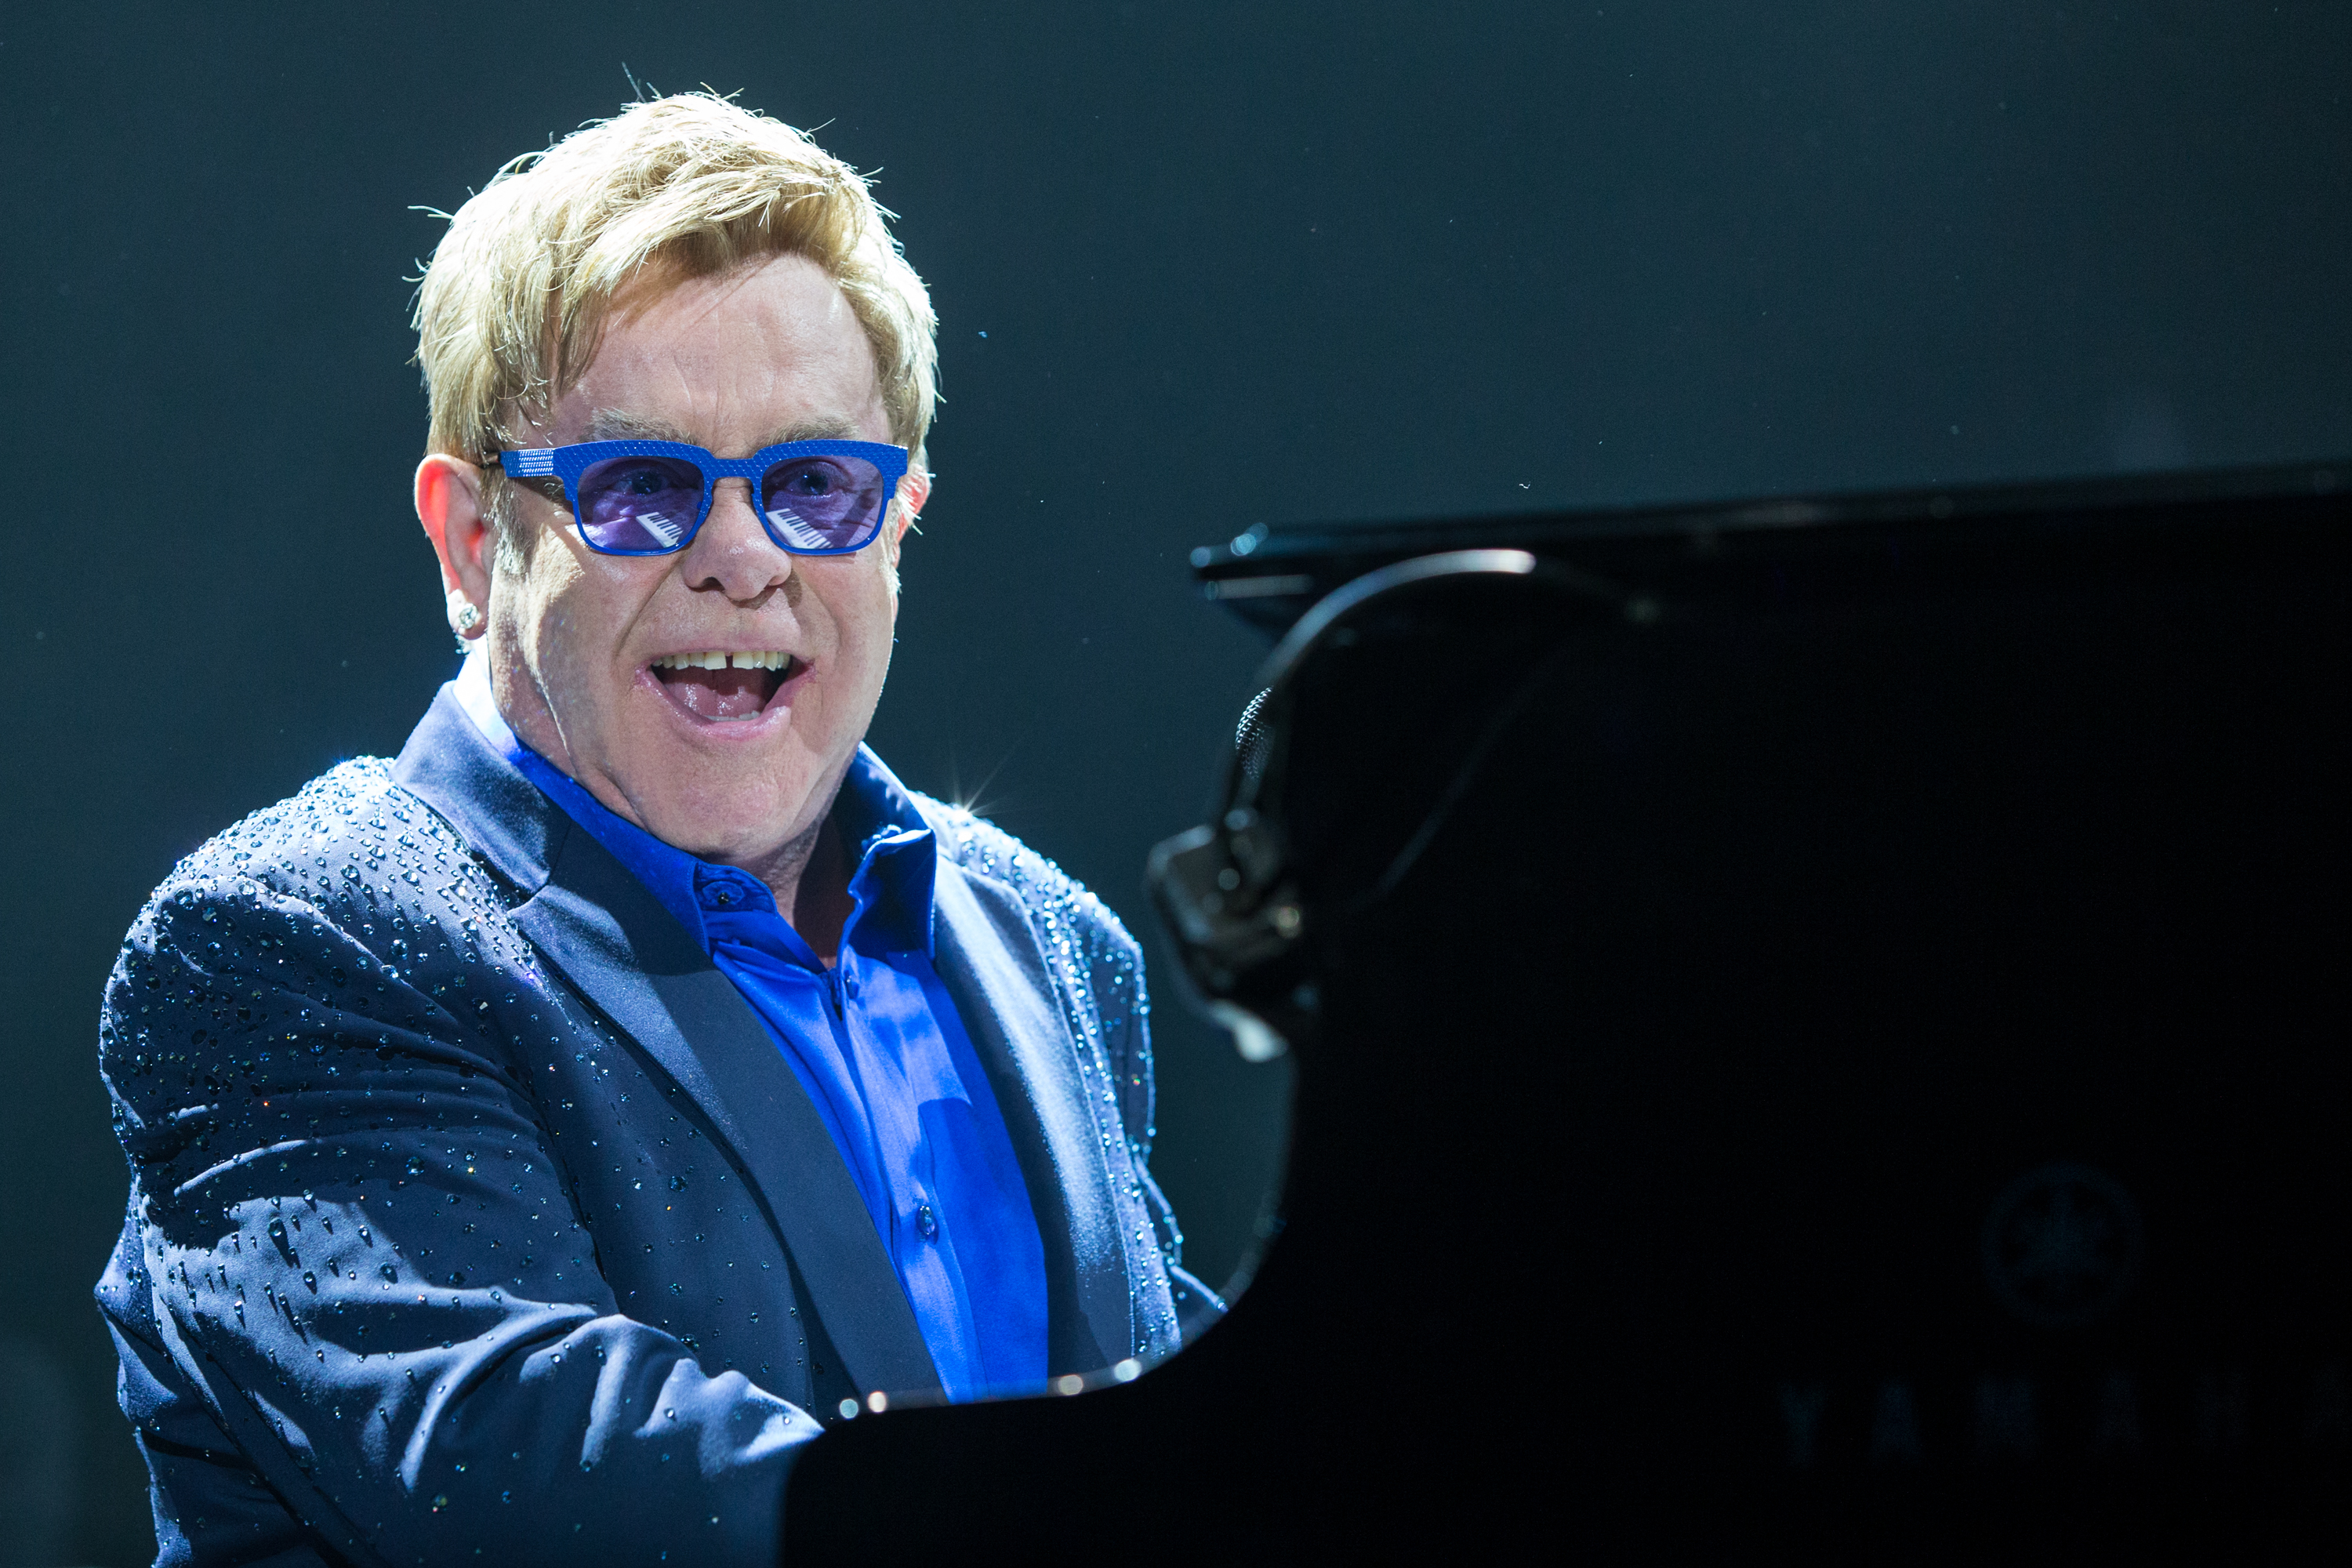 Elton John performs on stage at Staples Center on Saturday, October 4, 2014, in Los Angeles. (Photo by Paul A. Hebert/Invision/AP)